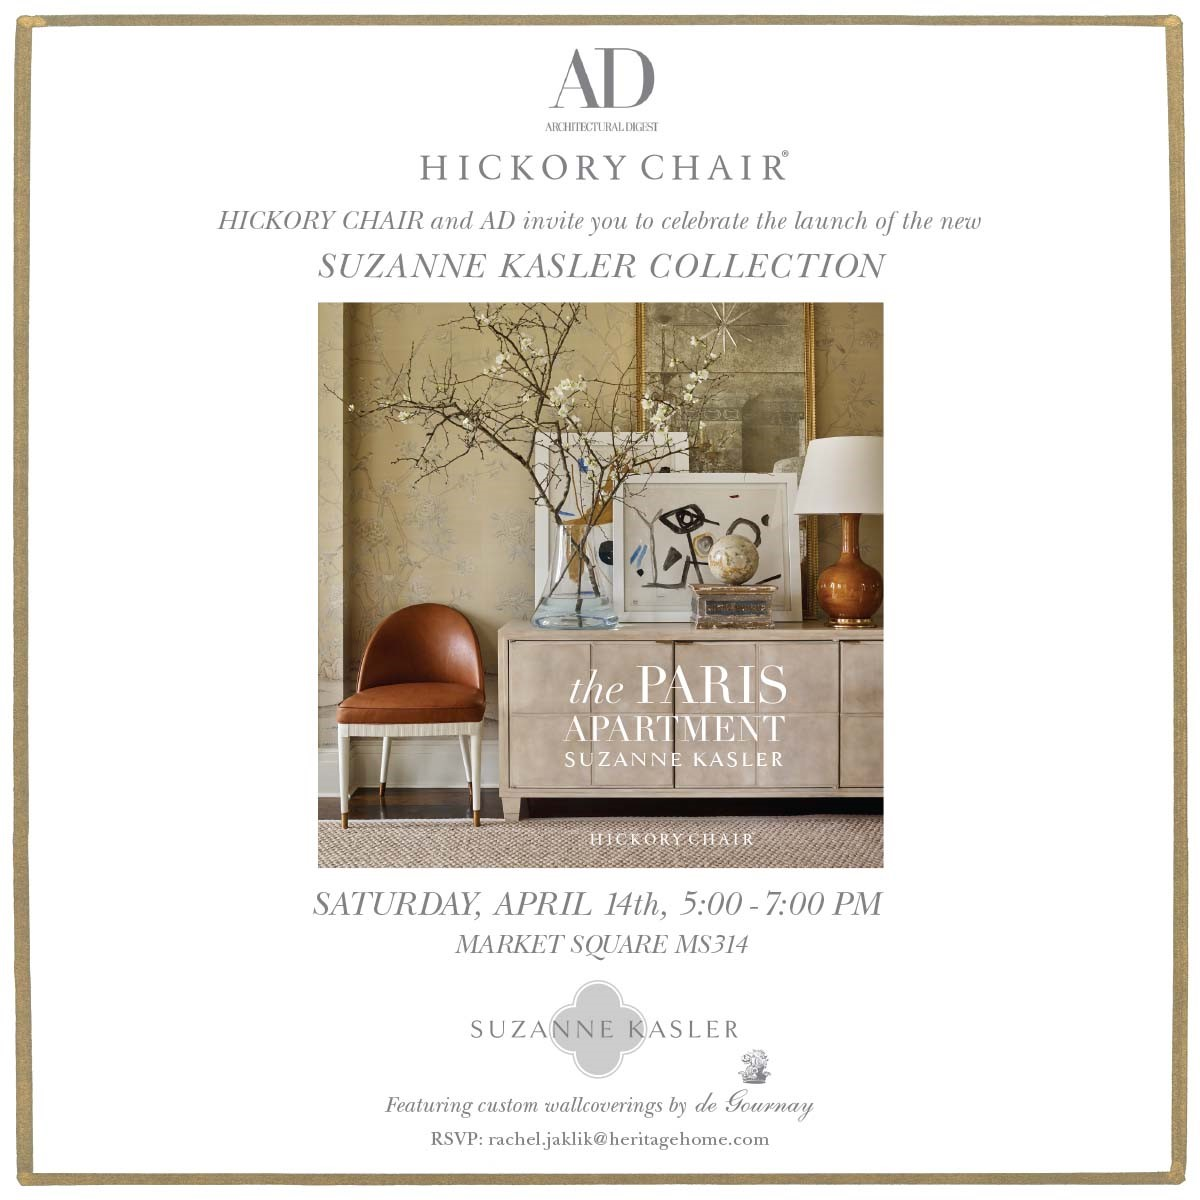 Suzanne Kasler for Hickory Chair April 2018 Invitaition.jpg